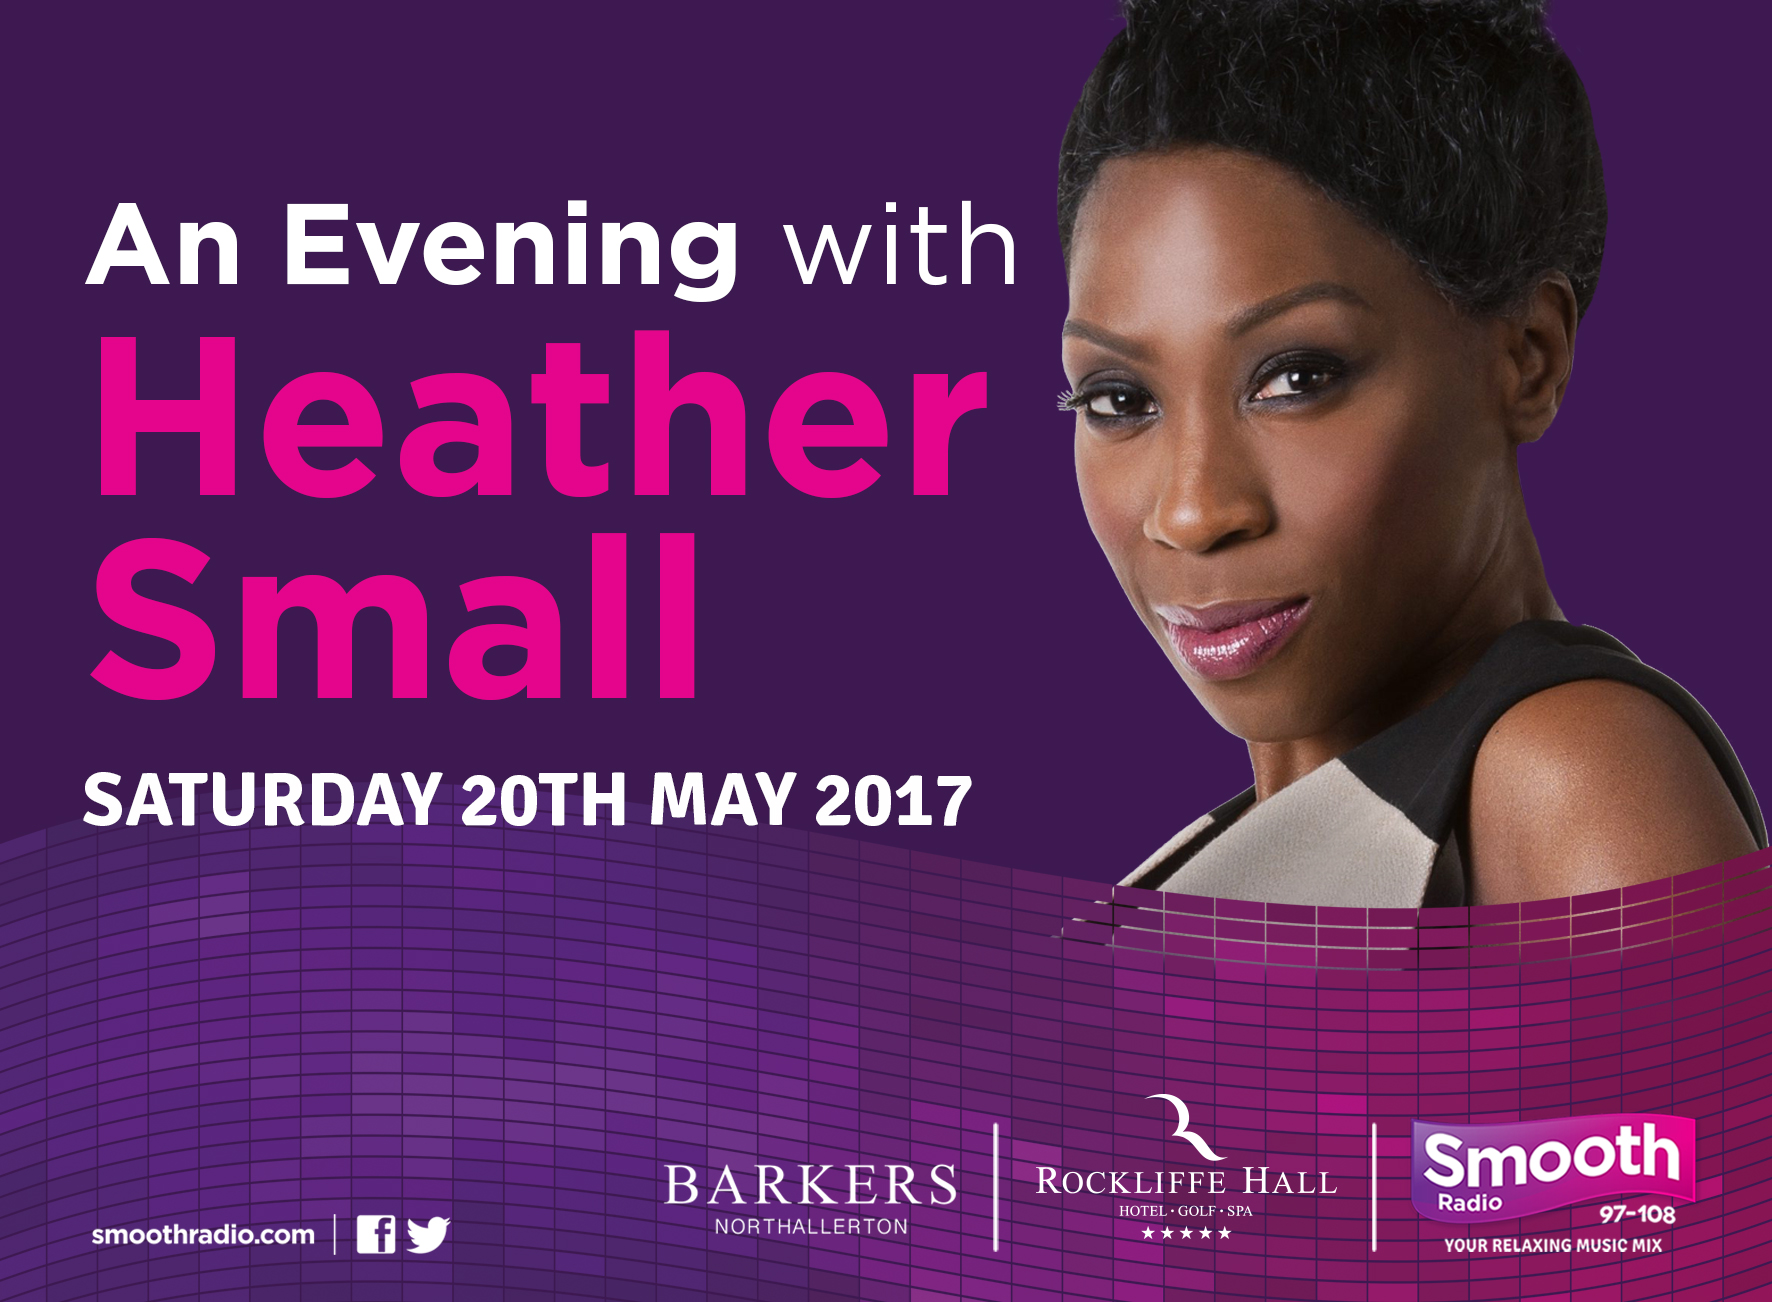 heather small at rockliffe